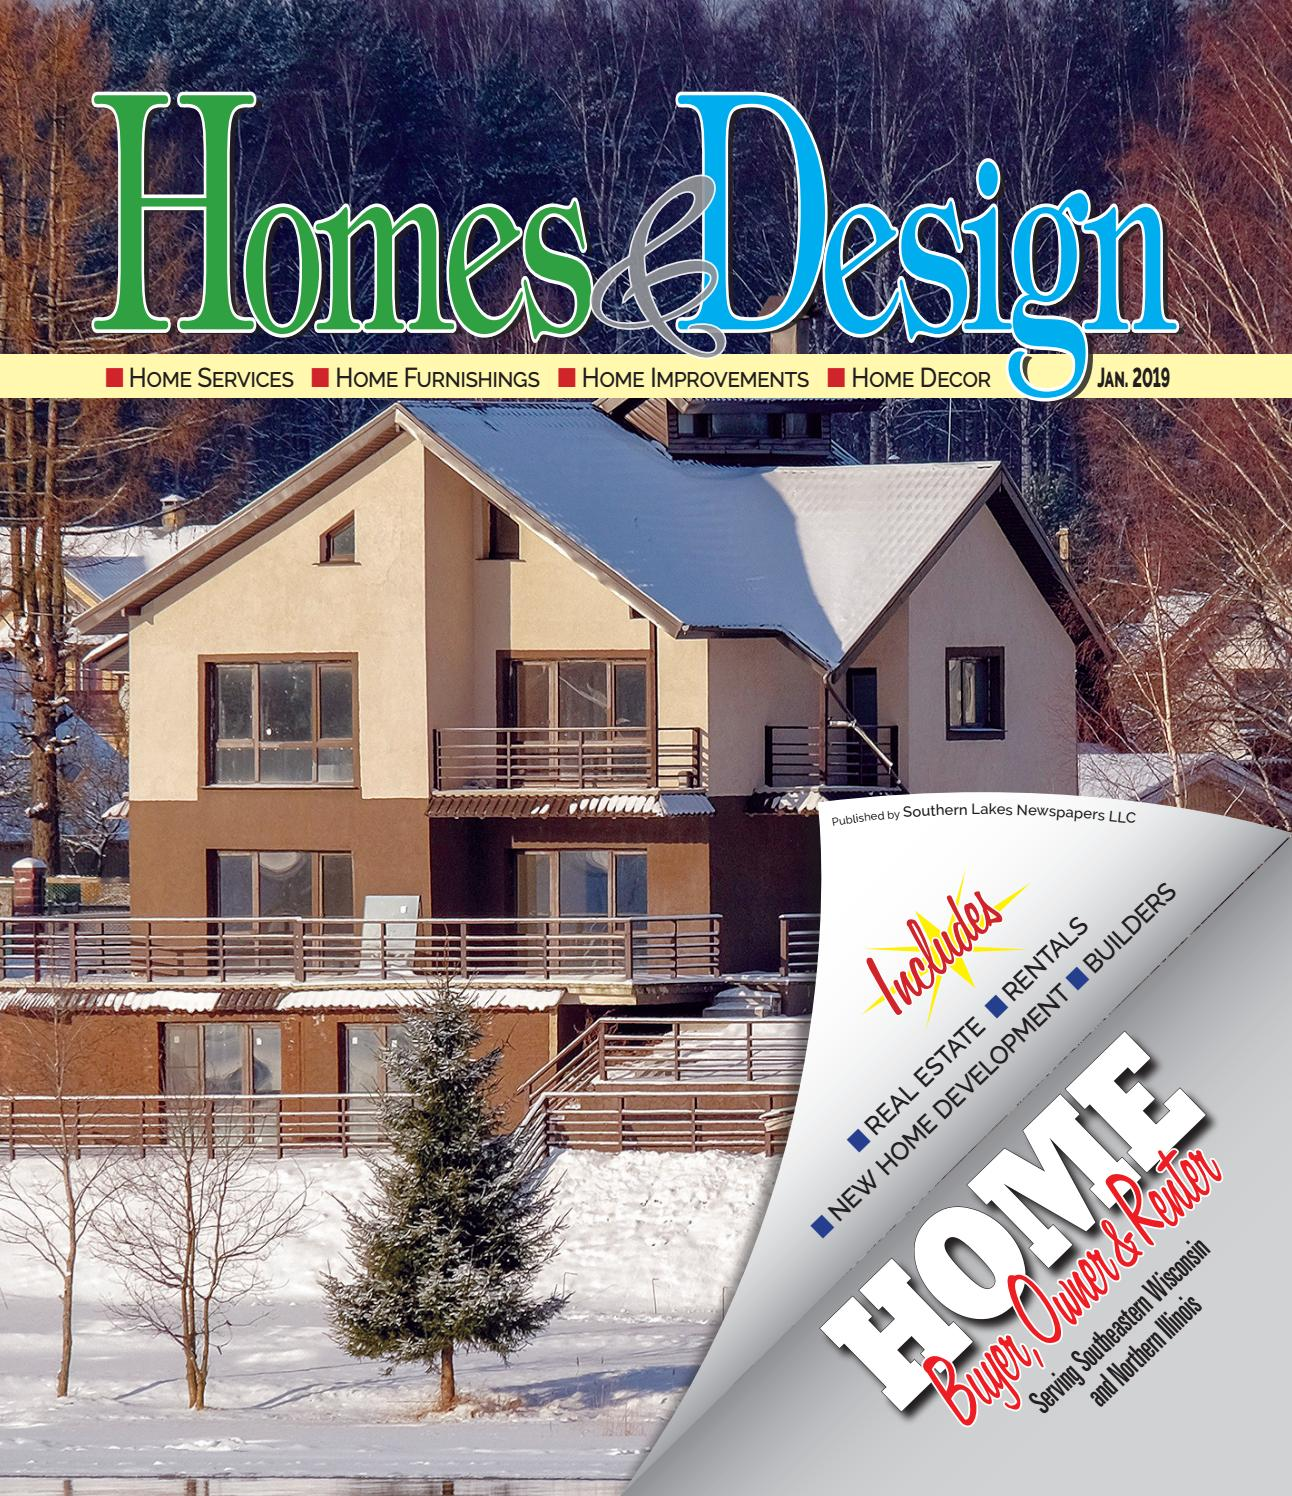 Homes & Design/Home Buyer for January 2019 by Southern Lakes